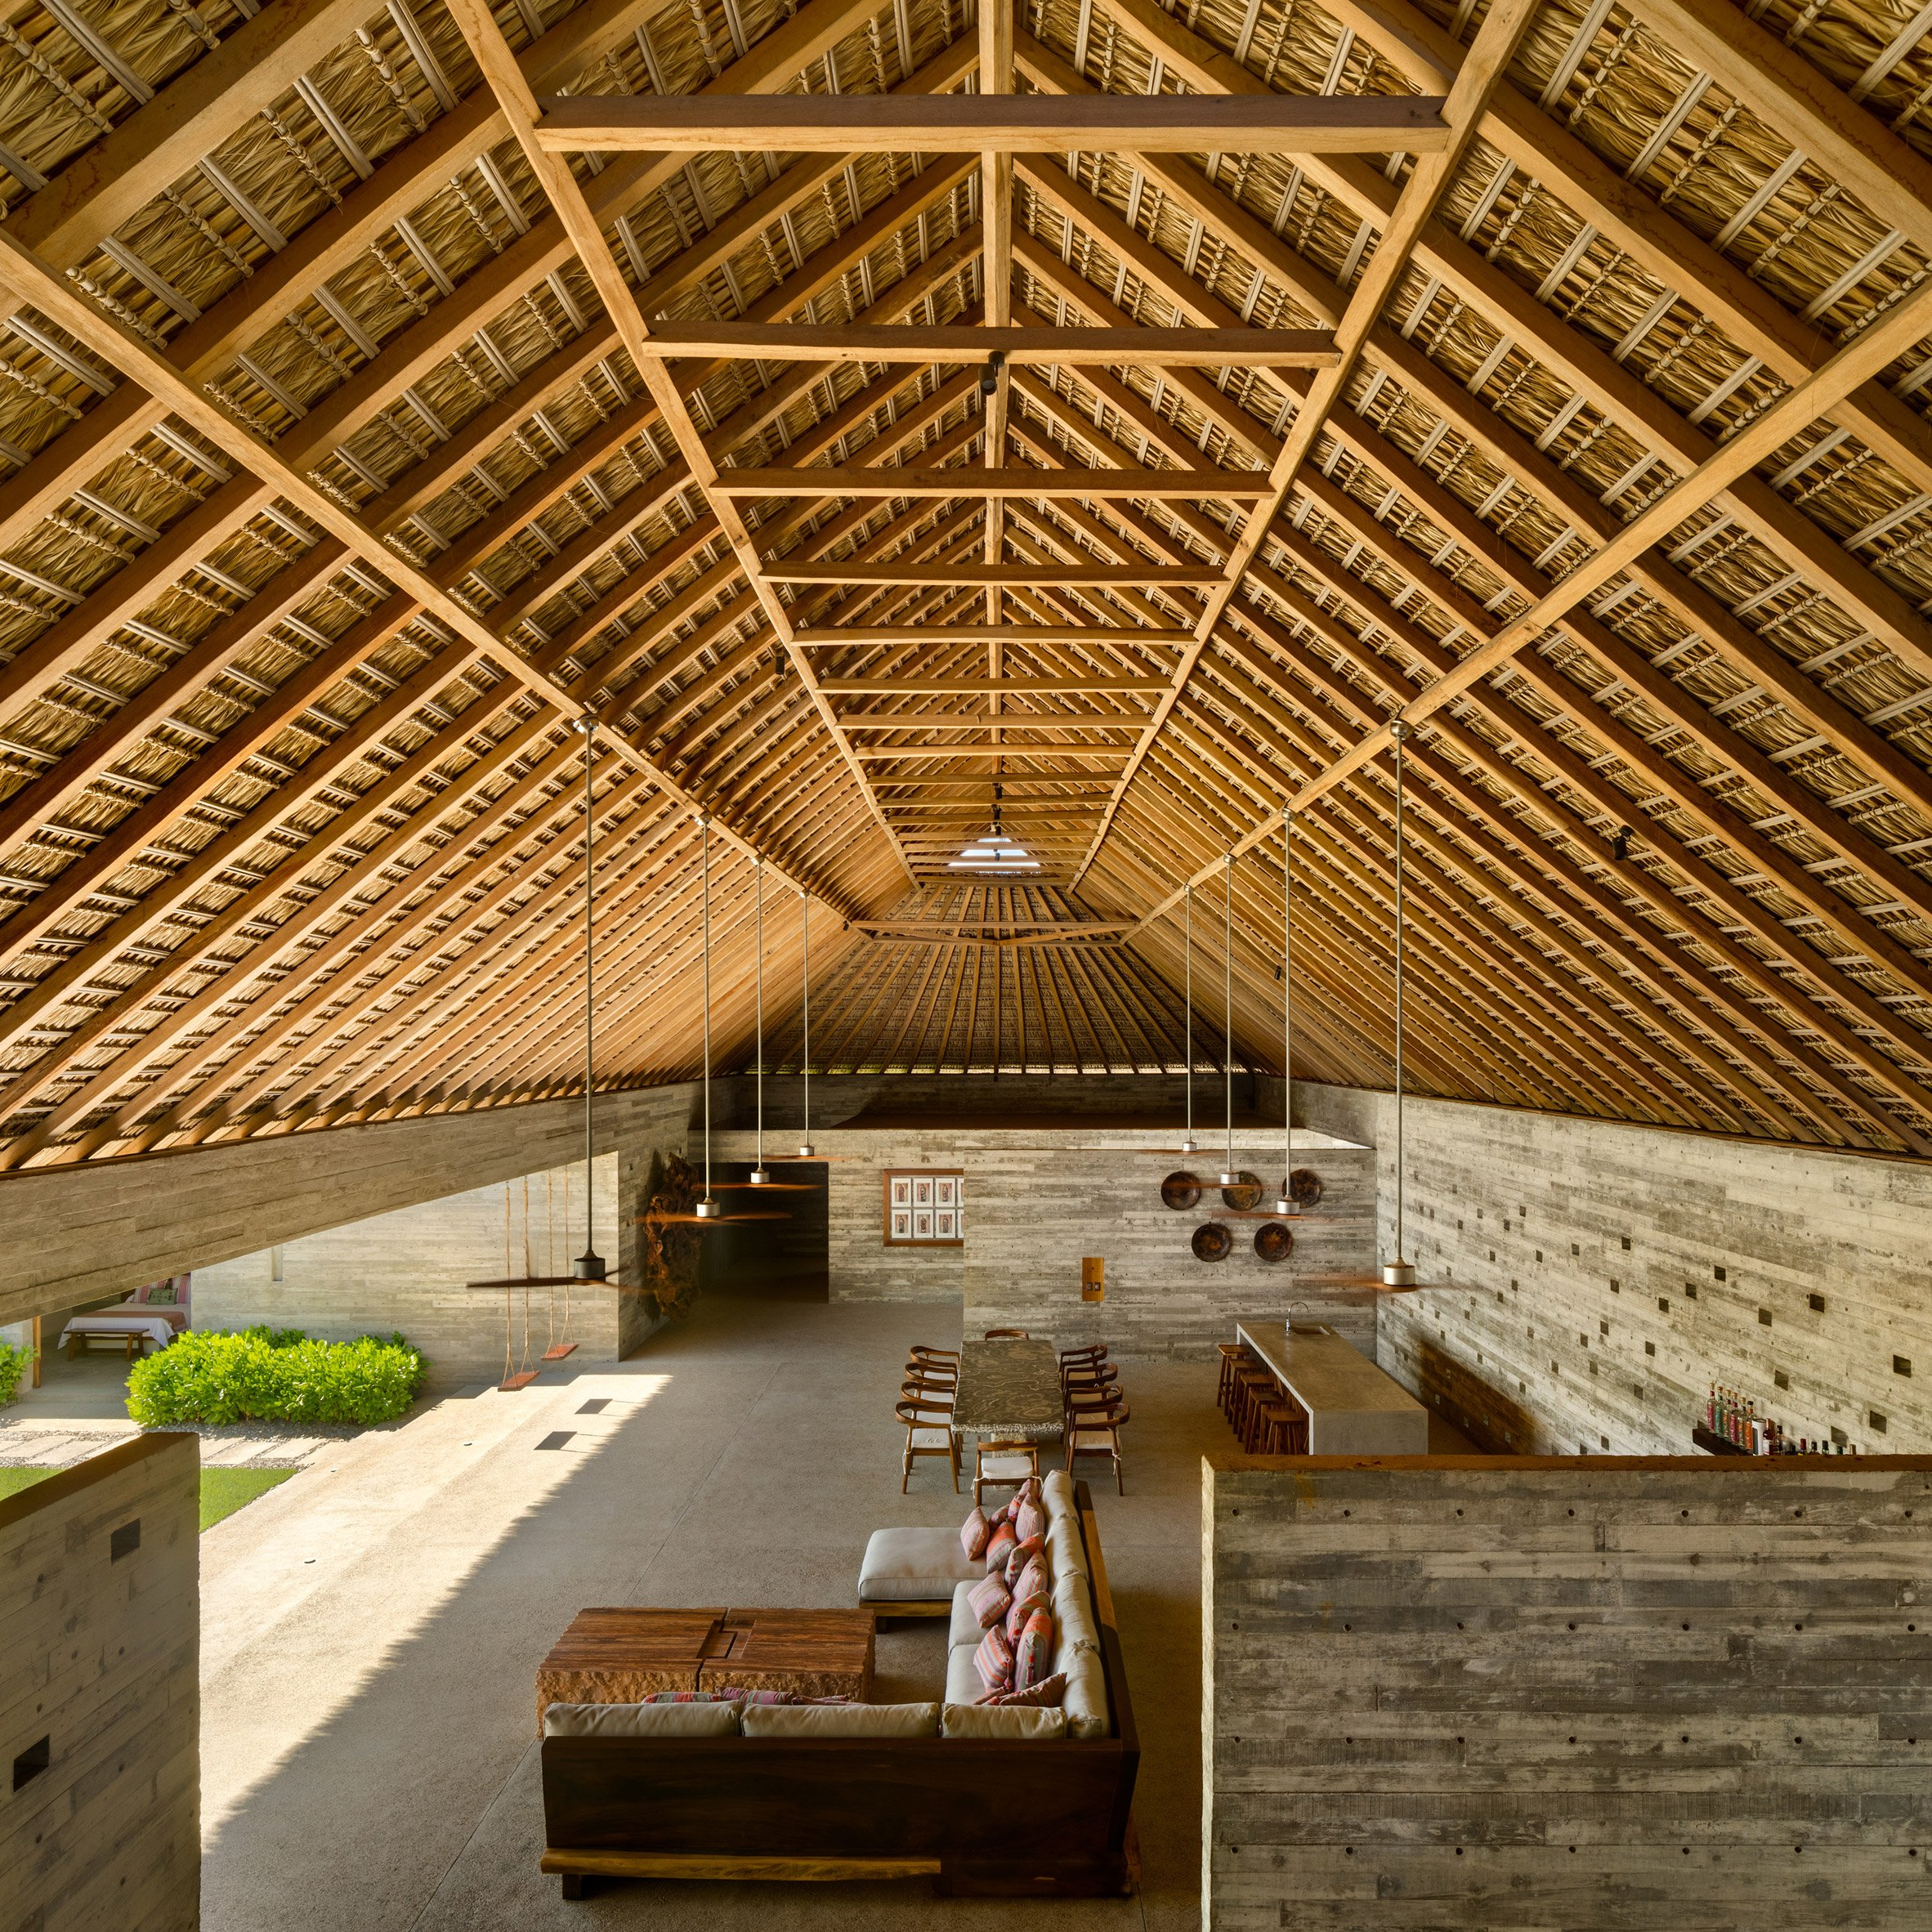 Casa Cova's thatched roof from the inside